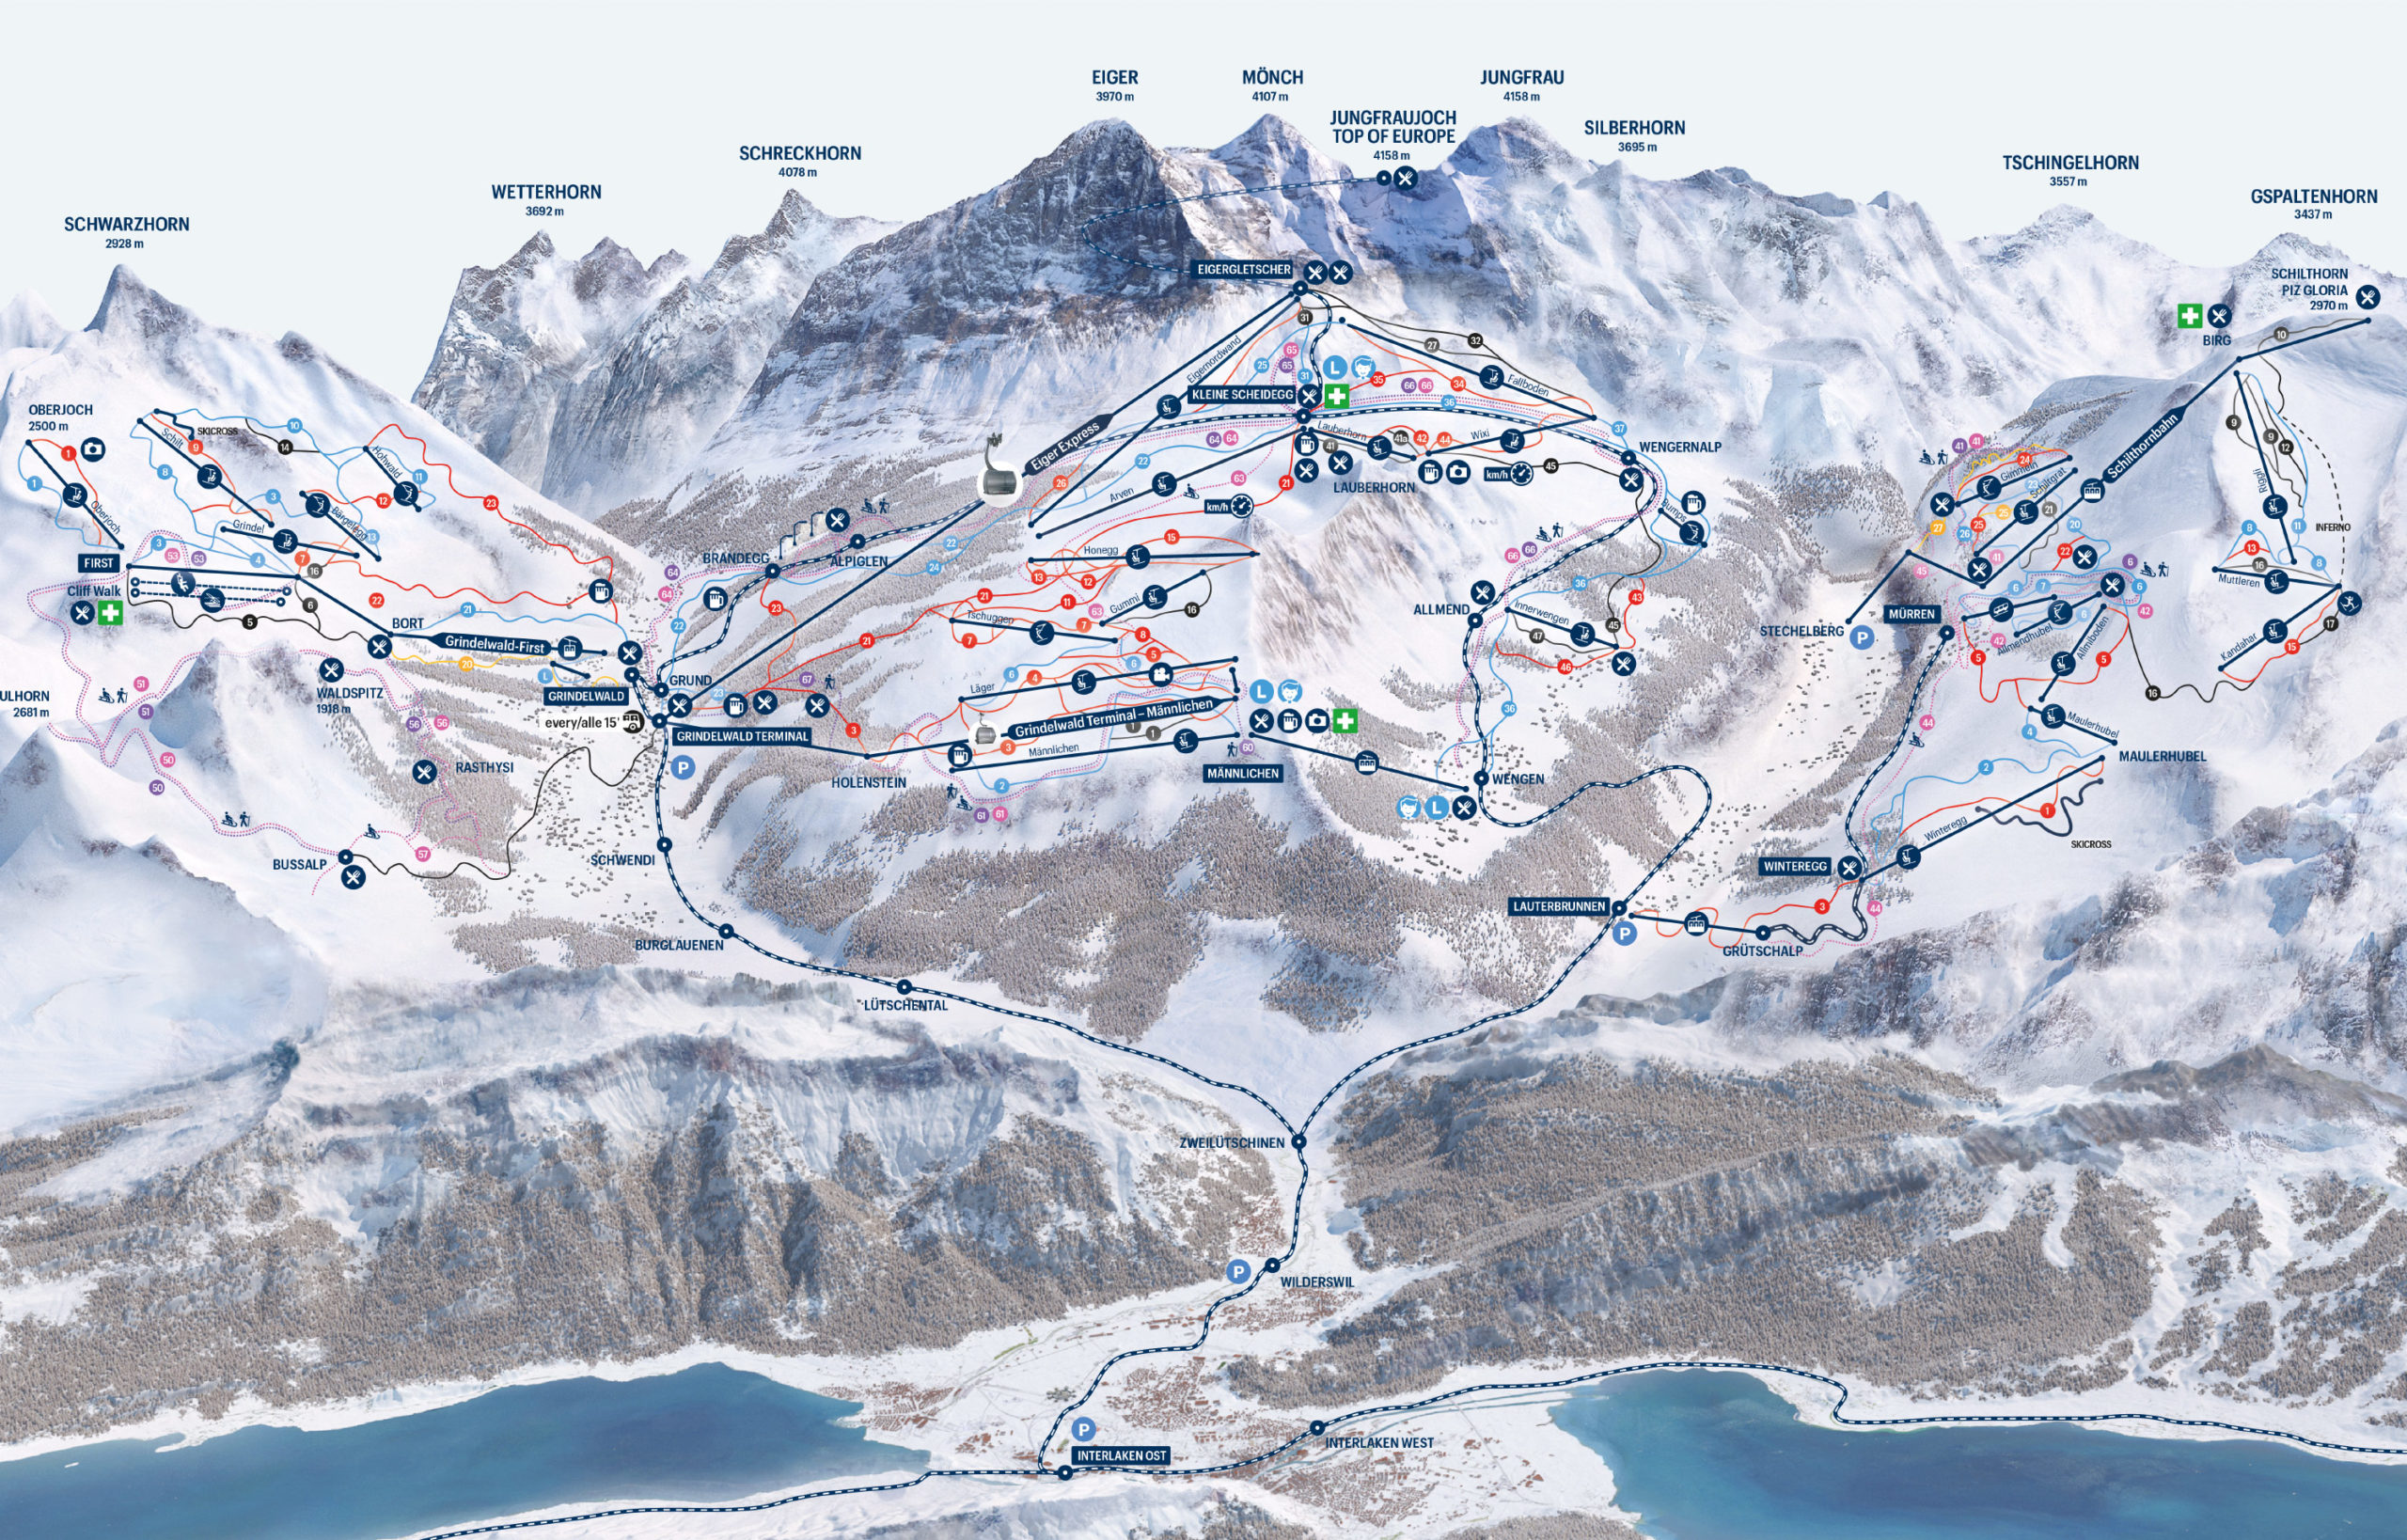 Winterlaken Card - slope map ski area Jungrau Region